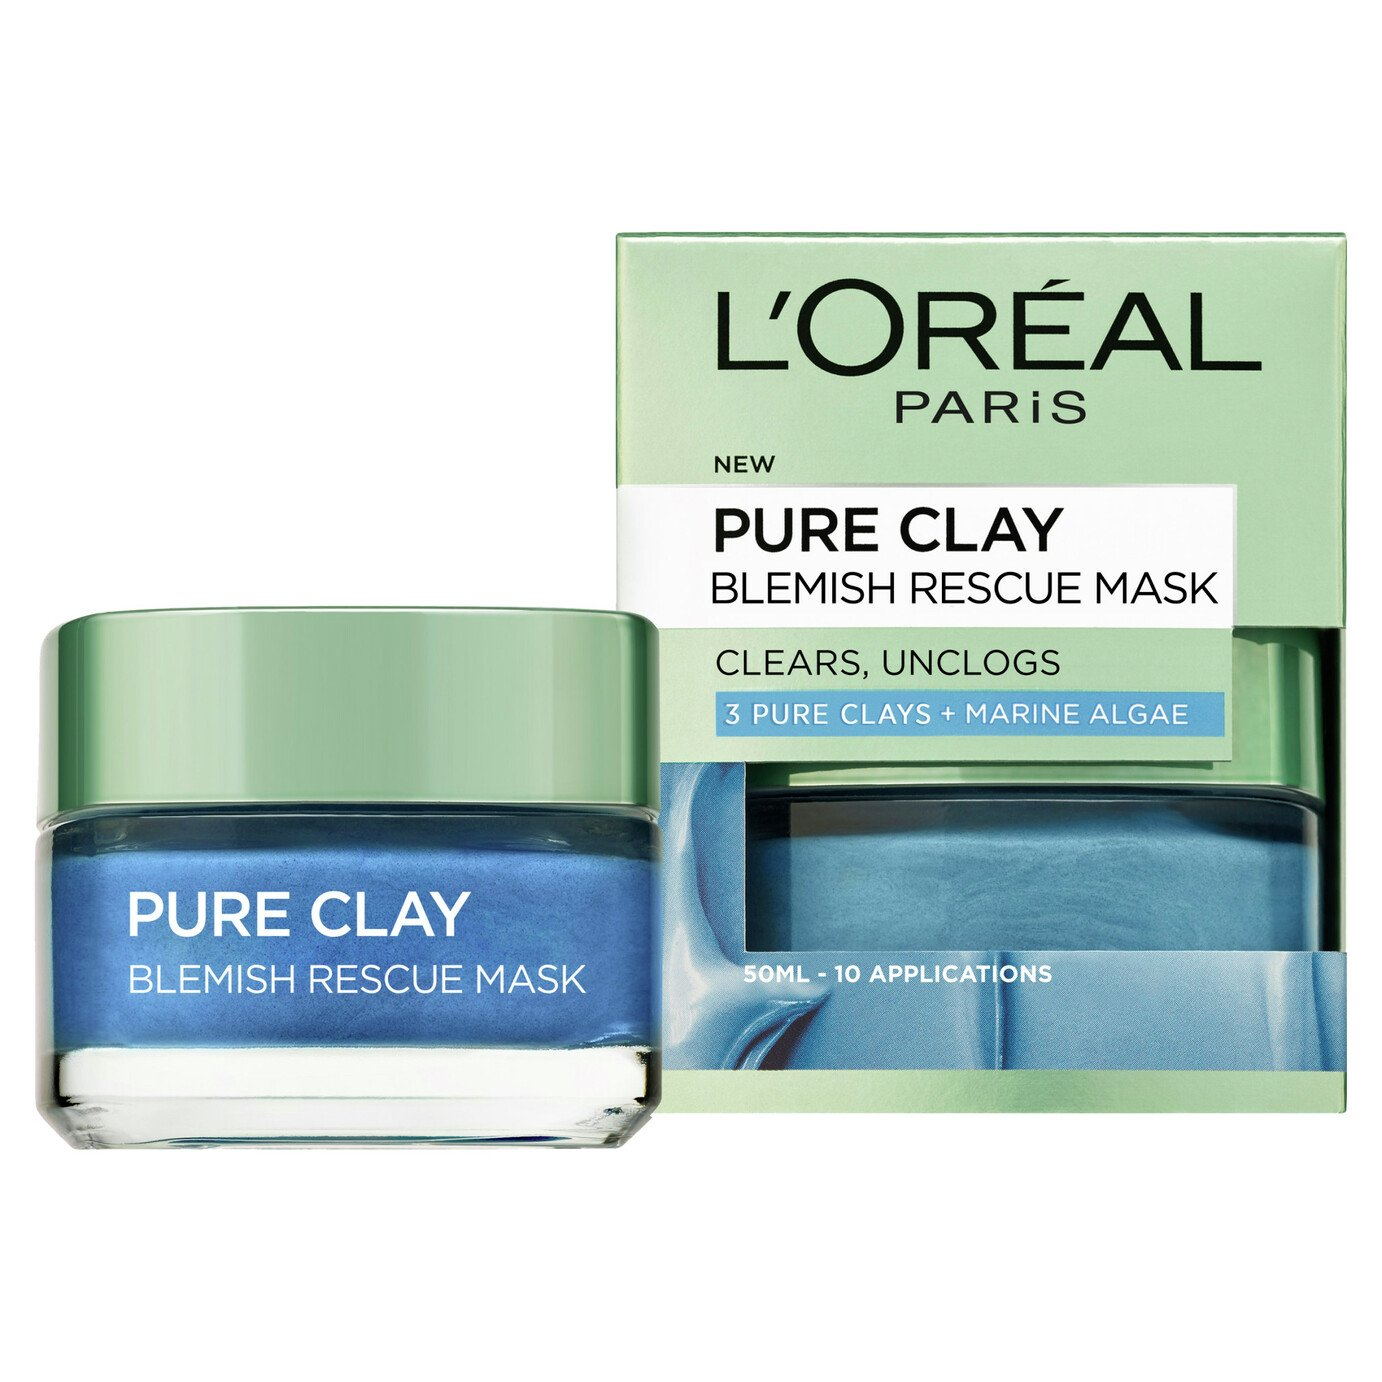 L'Oreal Pure Clay Blue Blemish Mask - 50ml